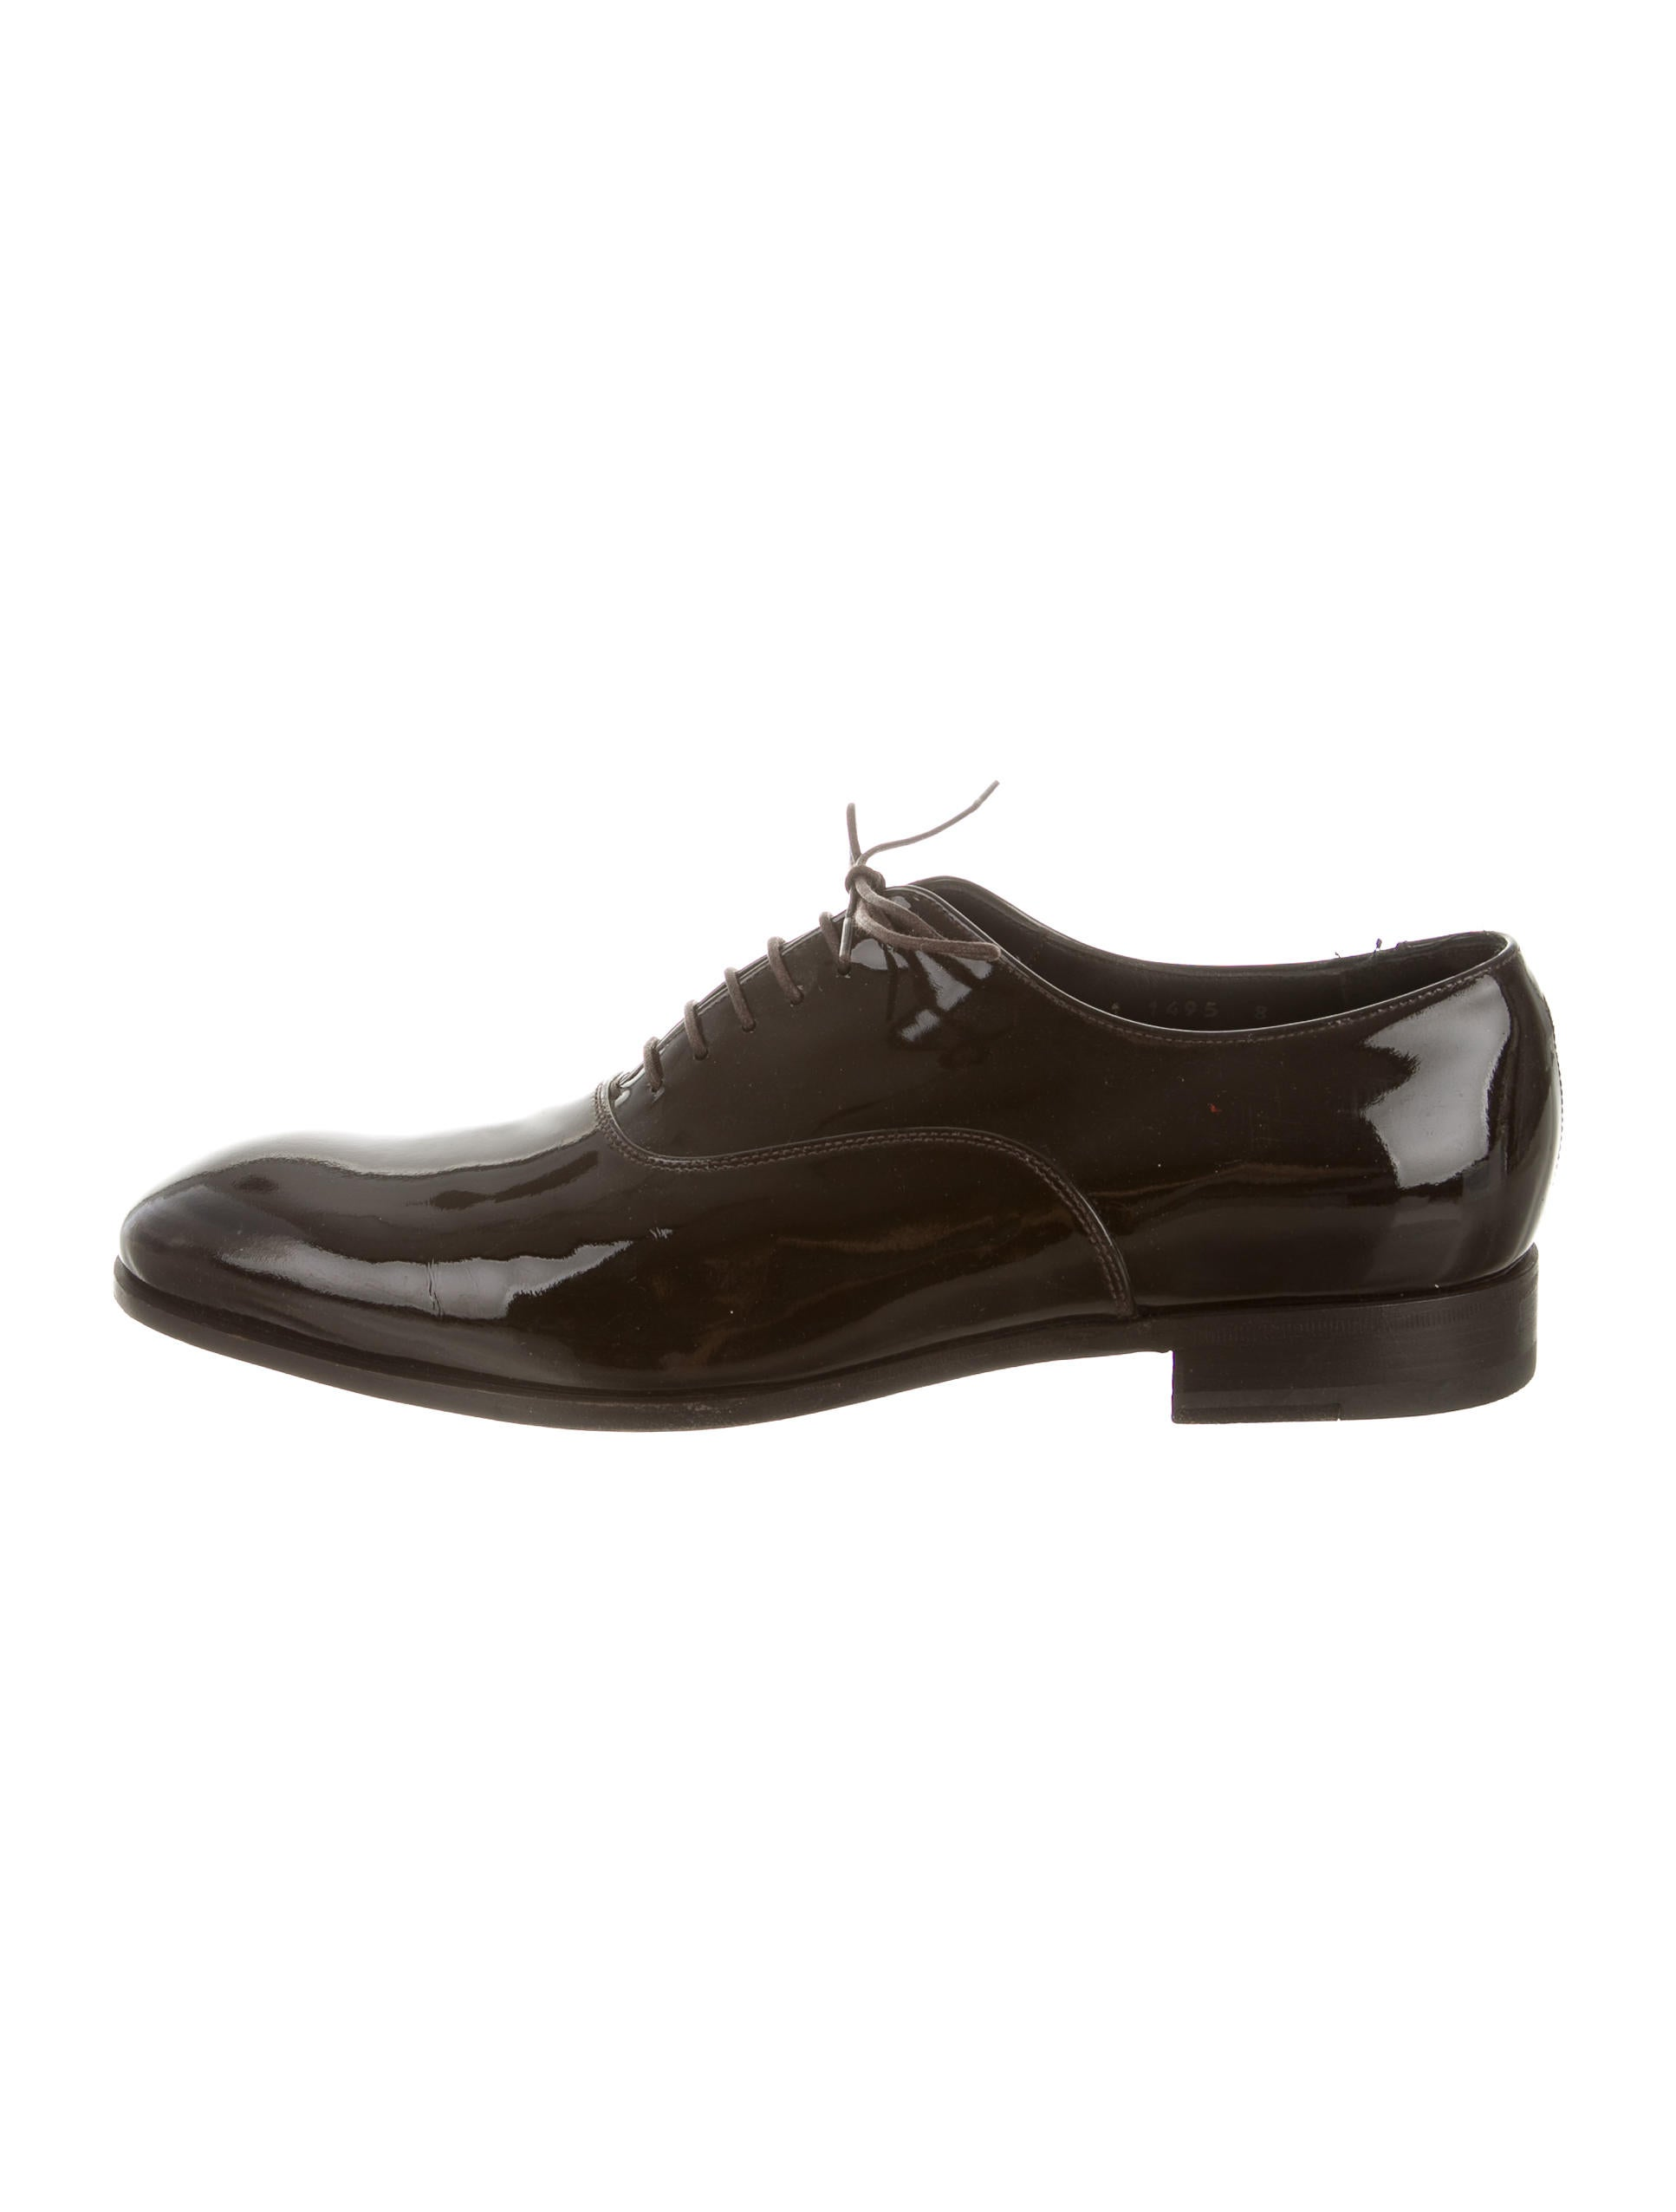 prada patent leather oxfords shoes pra117740 the